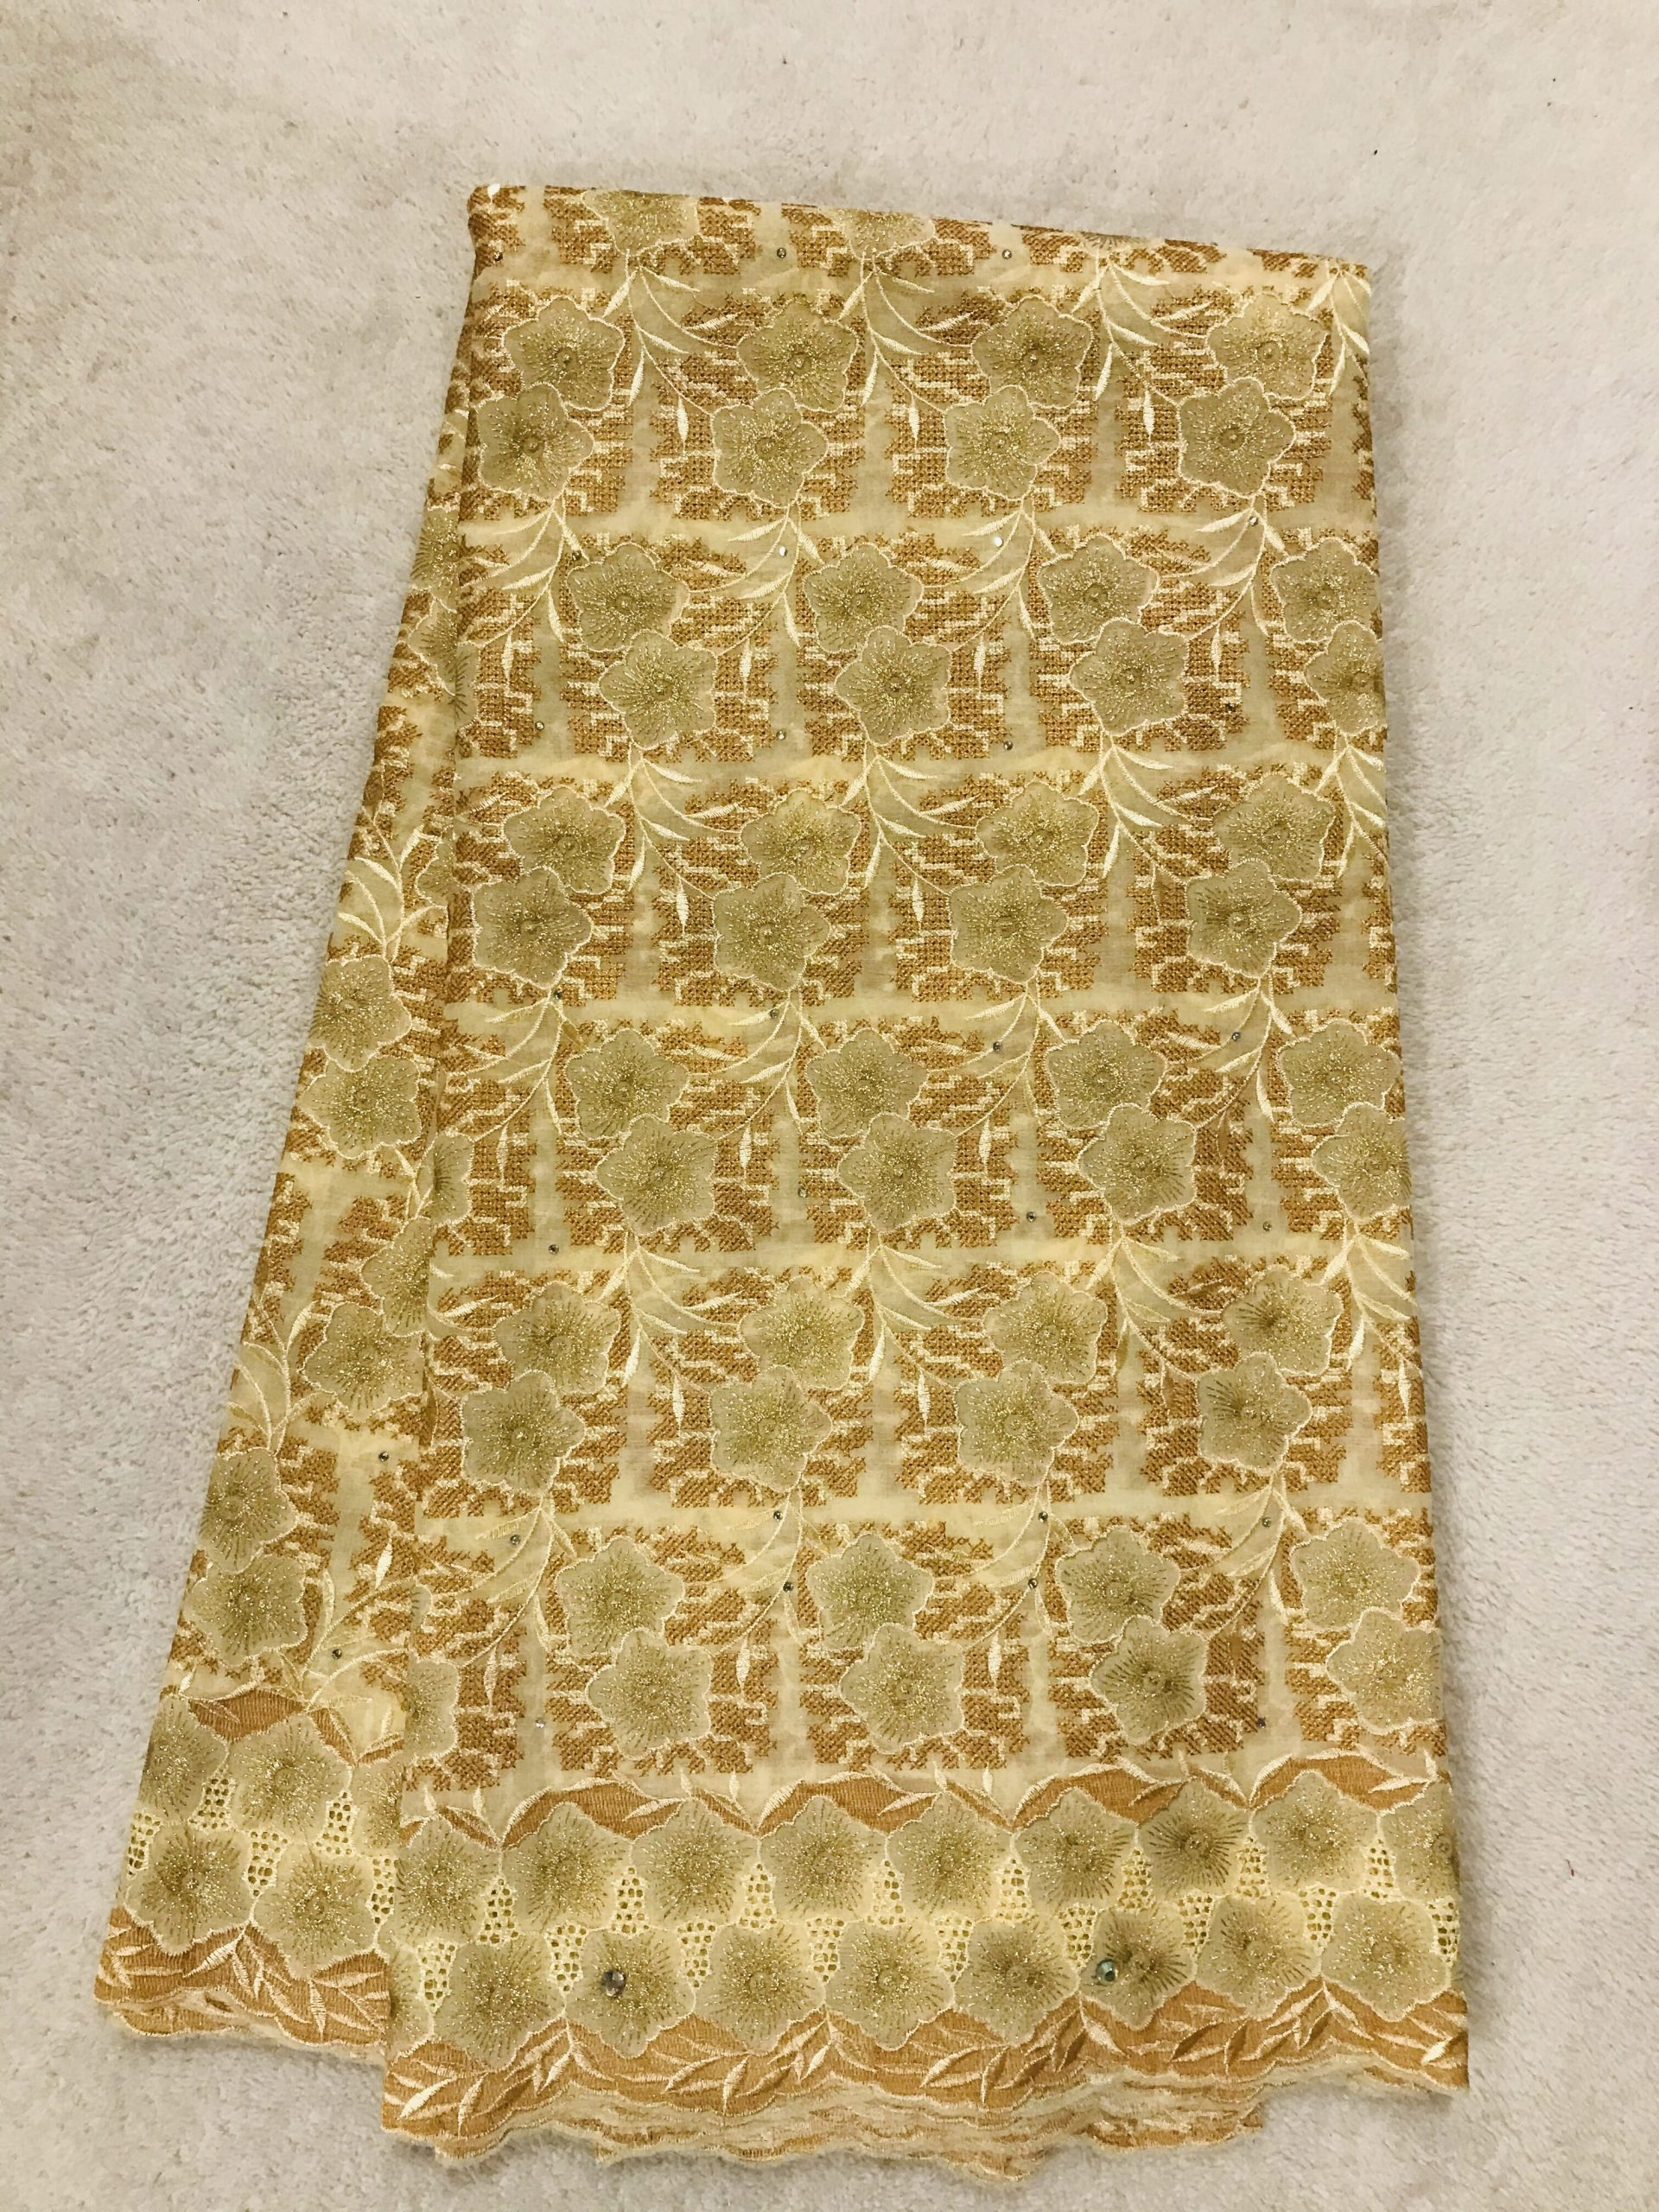 Bbfash African Fashion Lace Fabric. 5 yards 2019 fancy Golden Embroidered Flower Lace.French Lace Fabric Embroidered and Rhinestones Coton Cord Lace for Wedding  Party & More